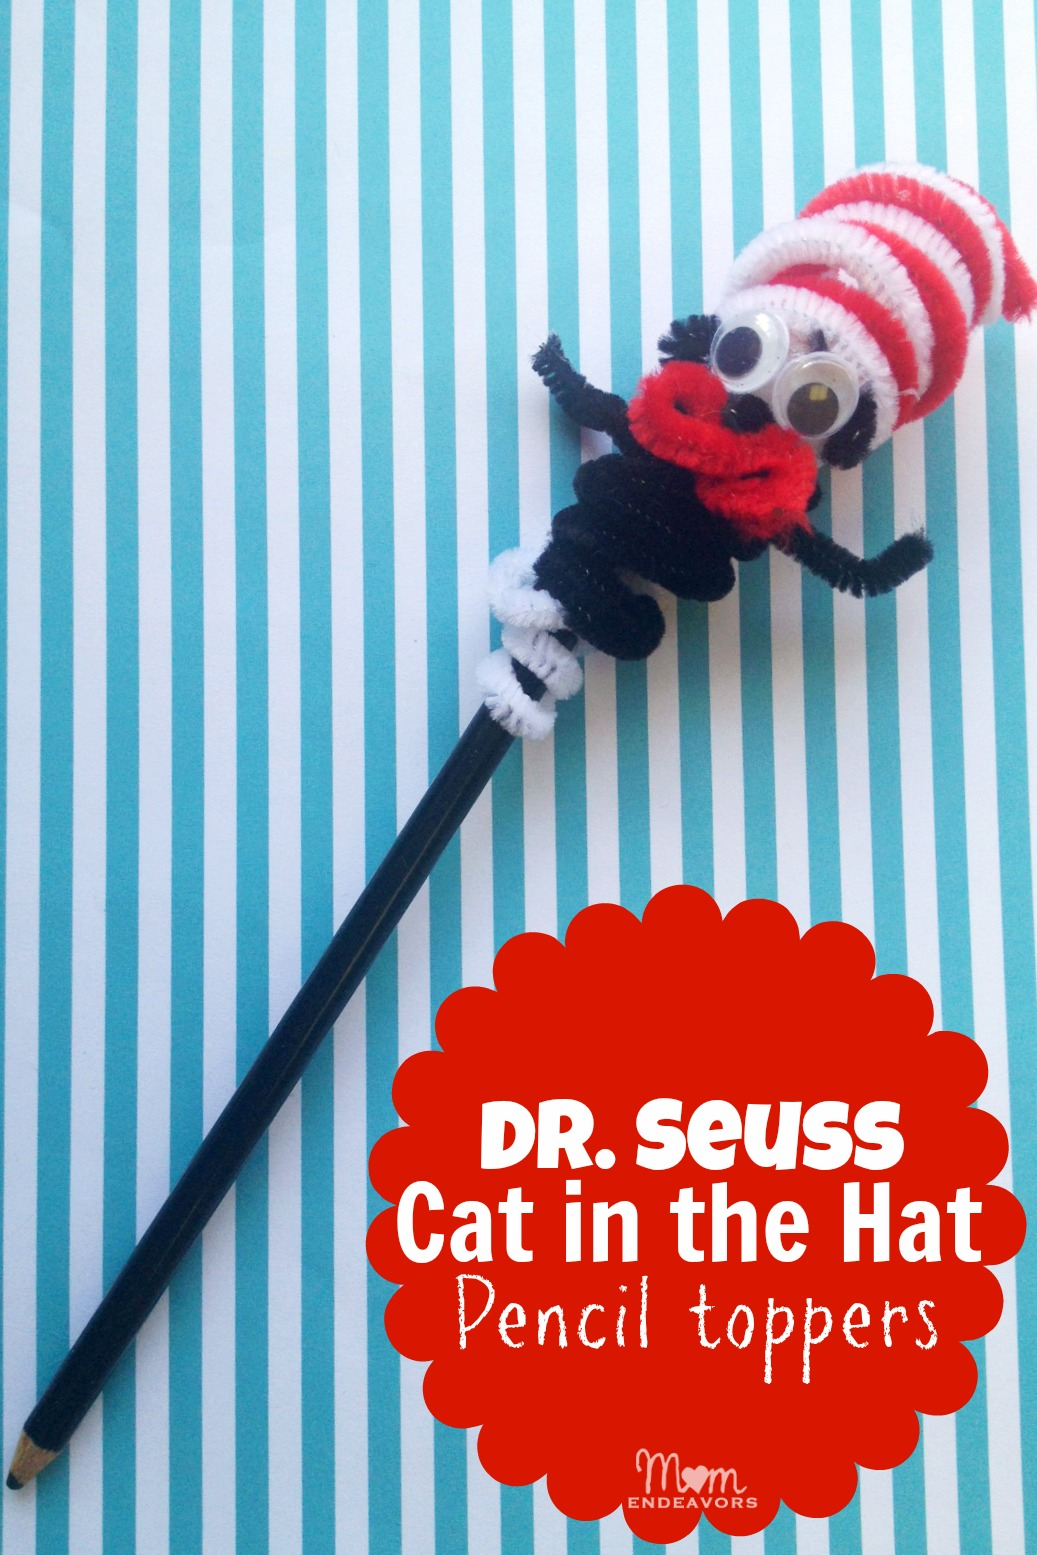 Dr.-Seuss-Cat-in-the-Hat-Pencil-Toppers